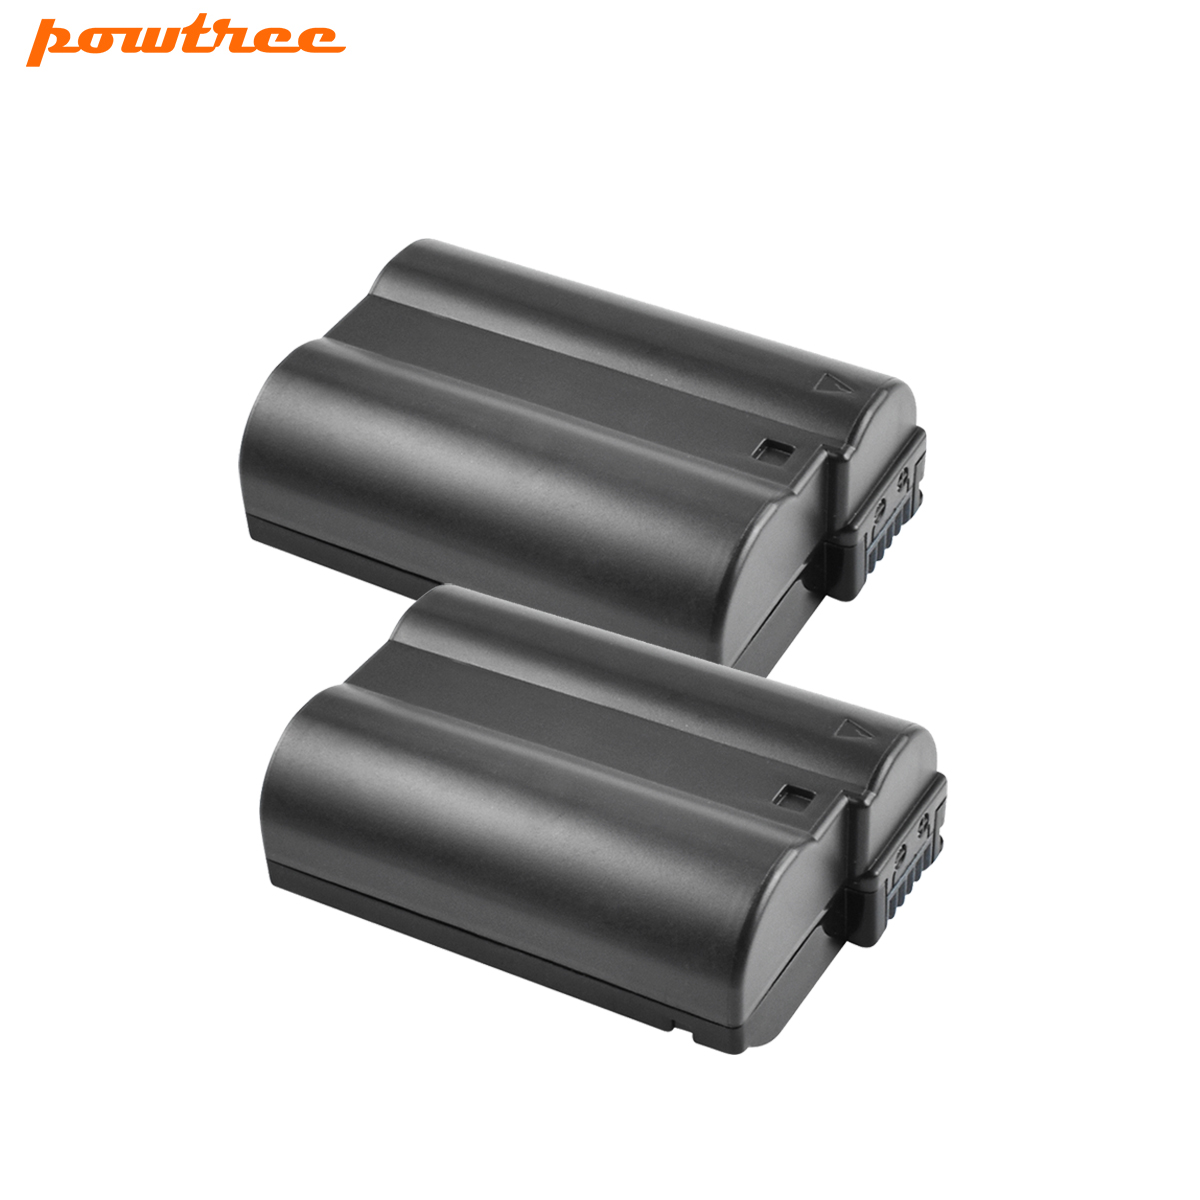 2 Pack EN-EL15 ENEL15 EN EL15 Camera Battery for Nikon batteries D500,D600,D610,D750,D7000,D7100,D7200,D800,D850,D810A&1 L40